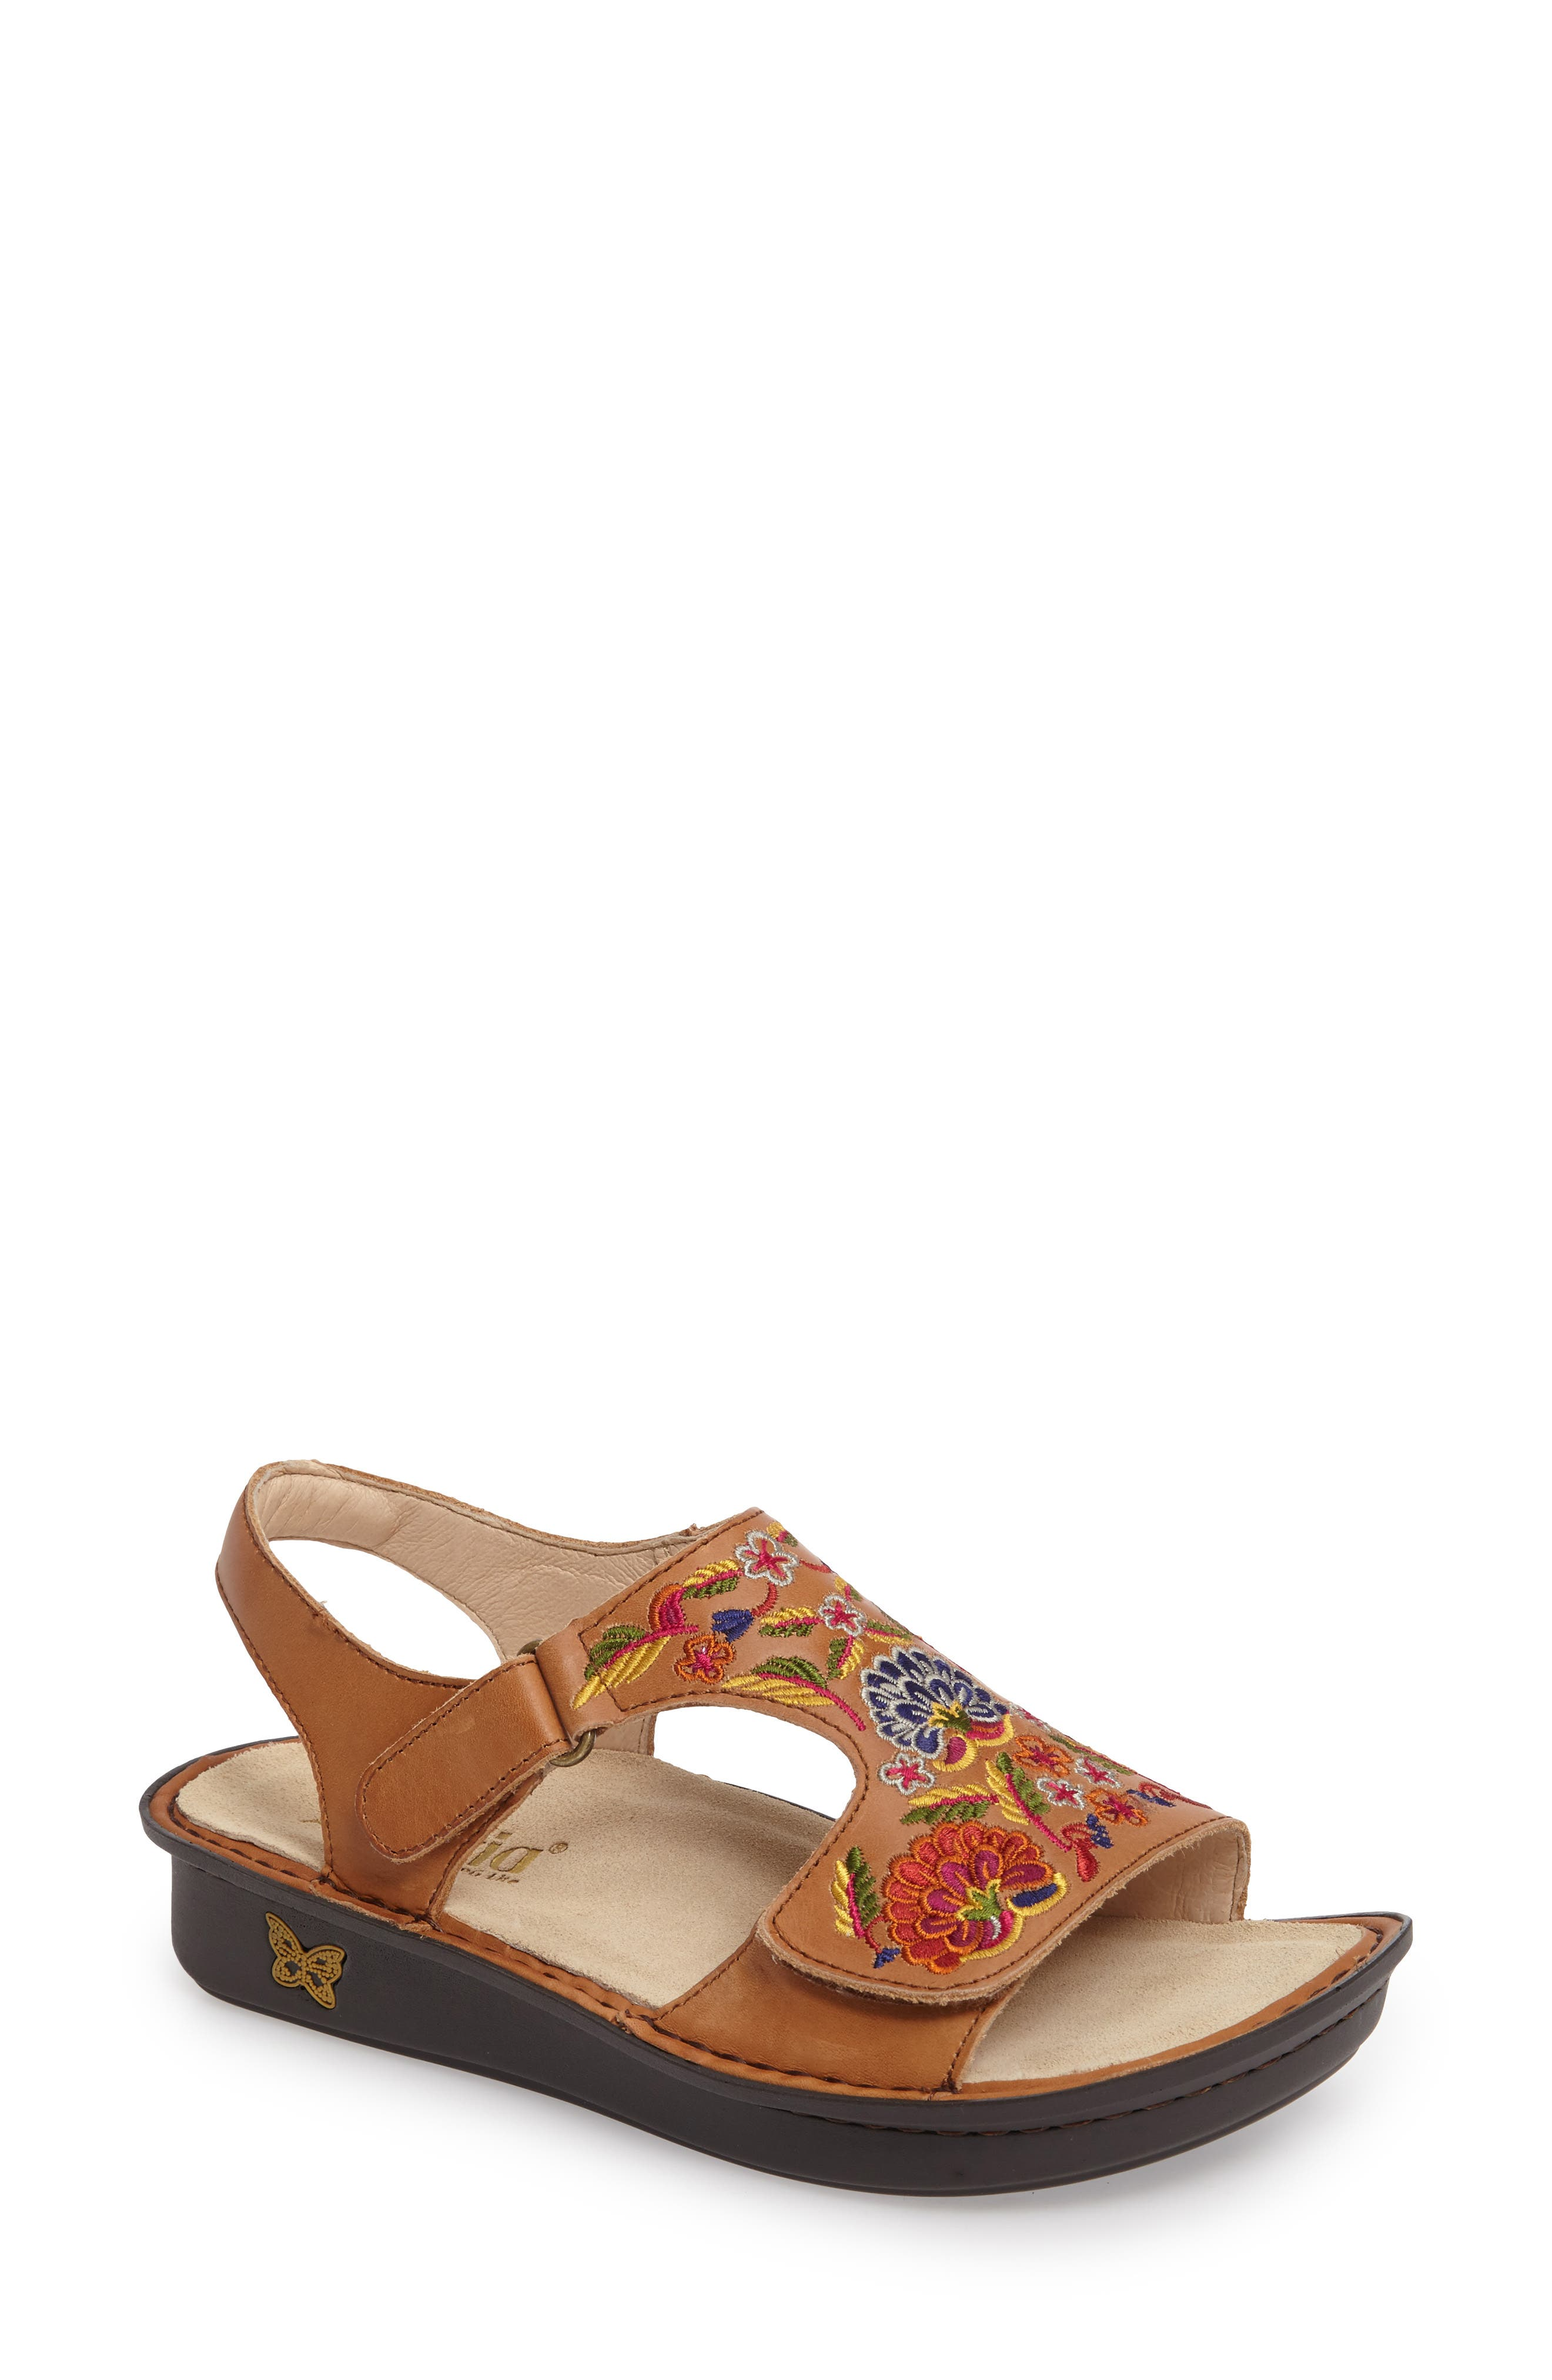 Viki Embroidered Sandal,                         Main,                         color, Cognac Pins/ Needles Leather